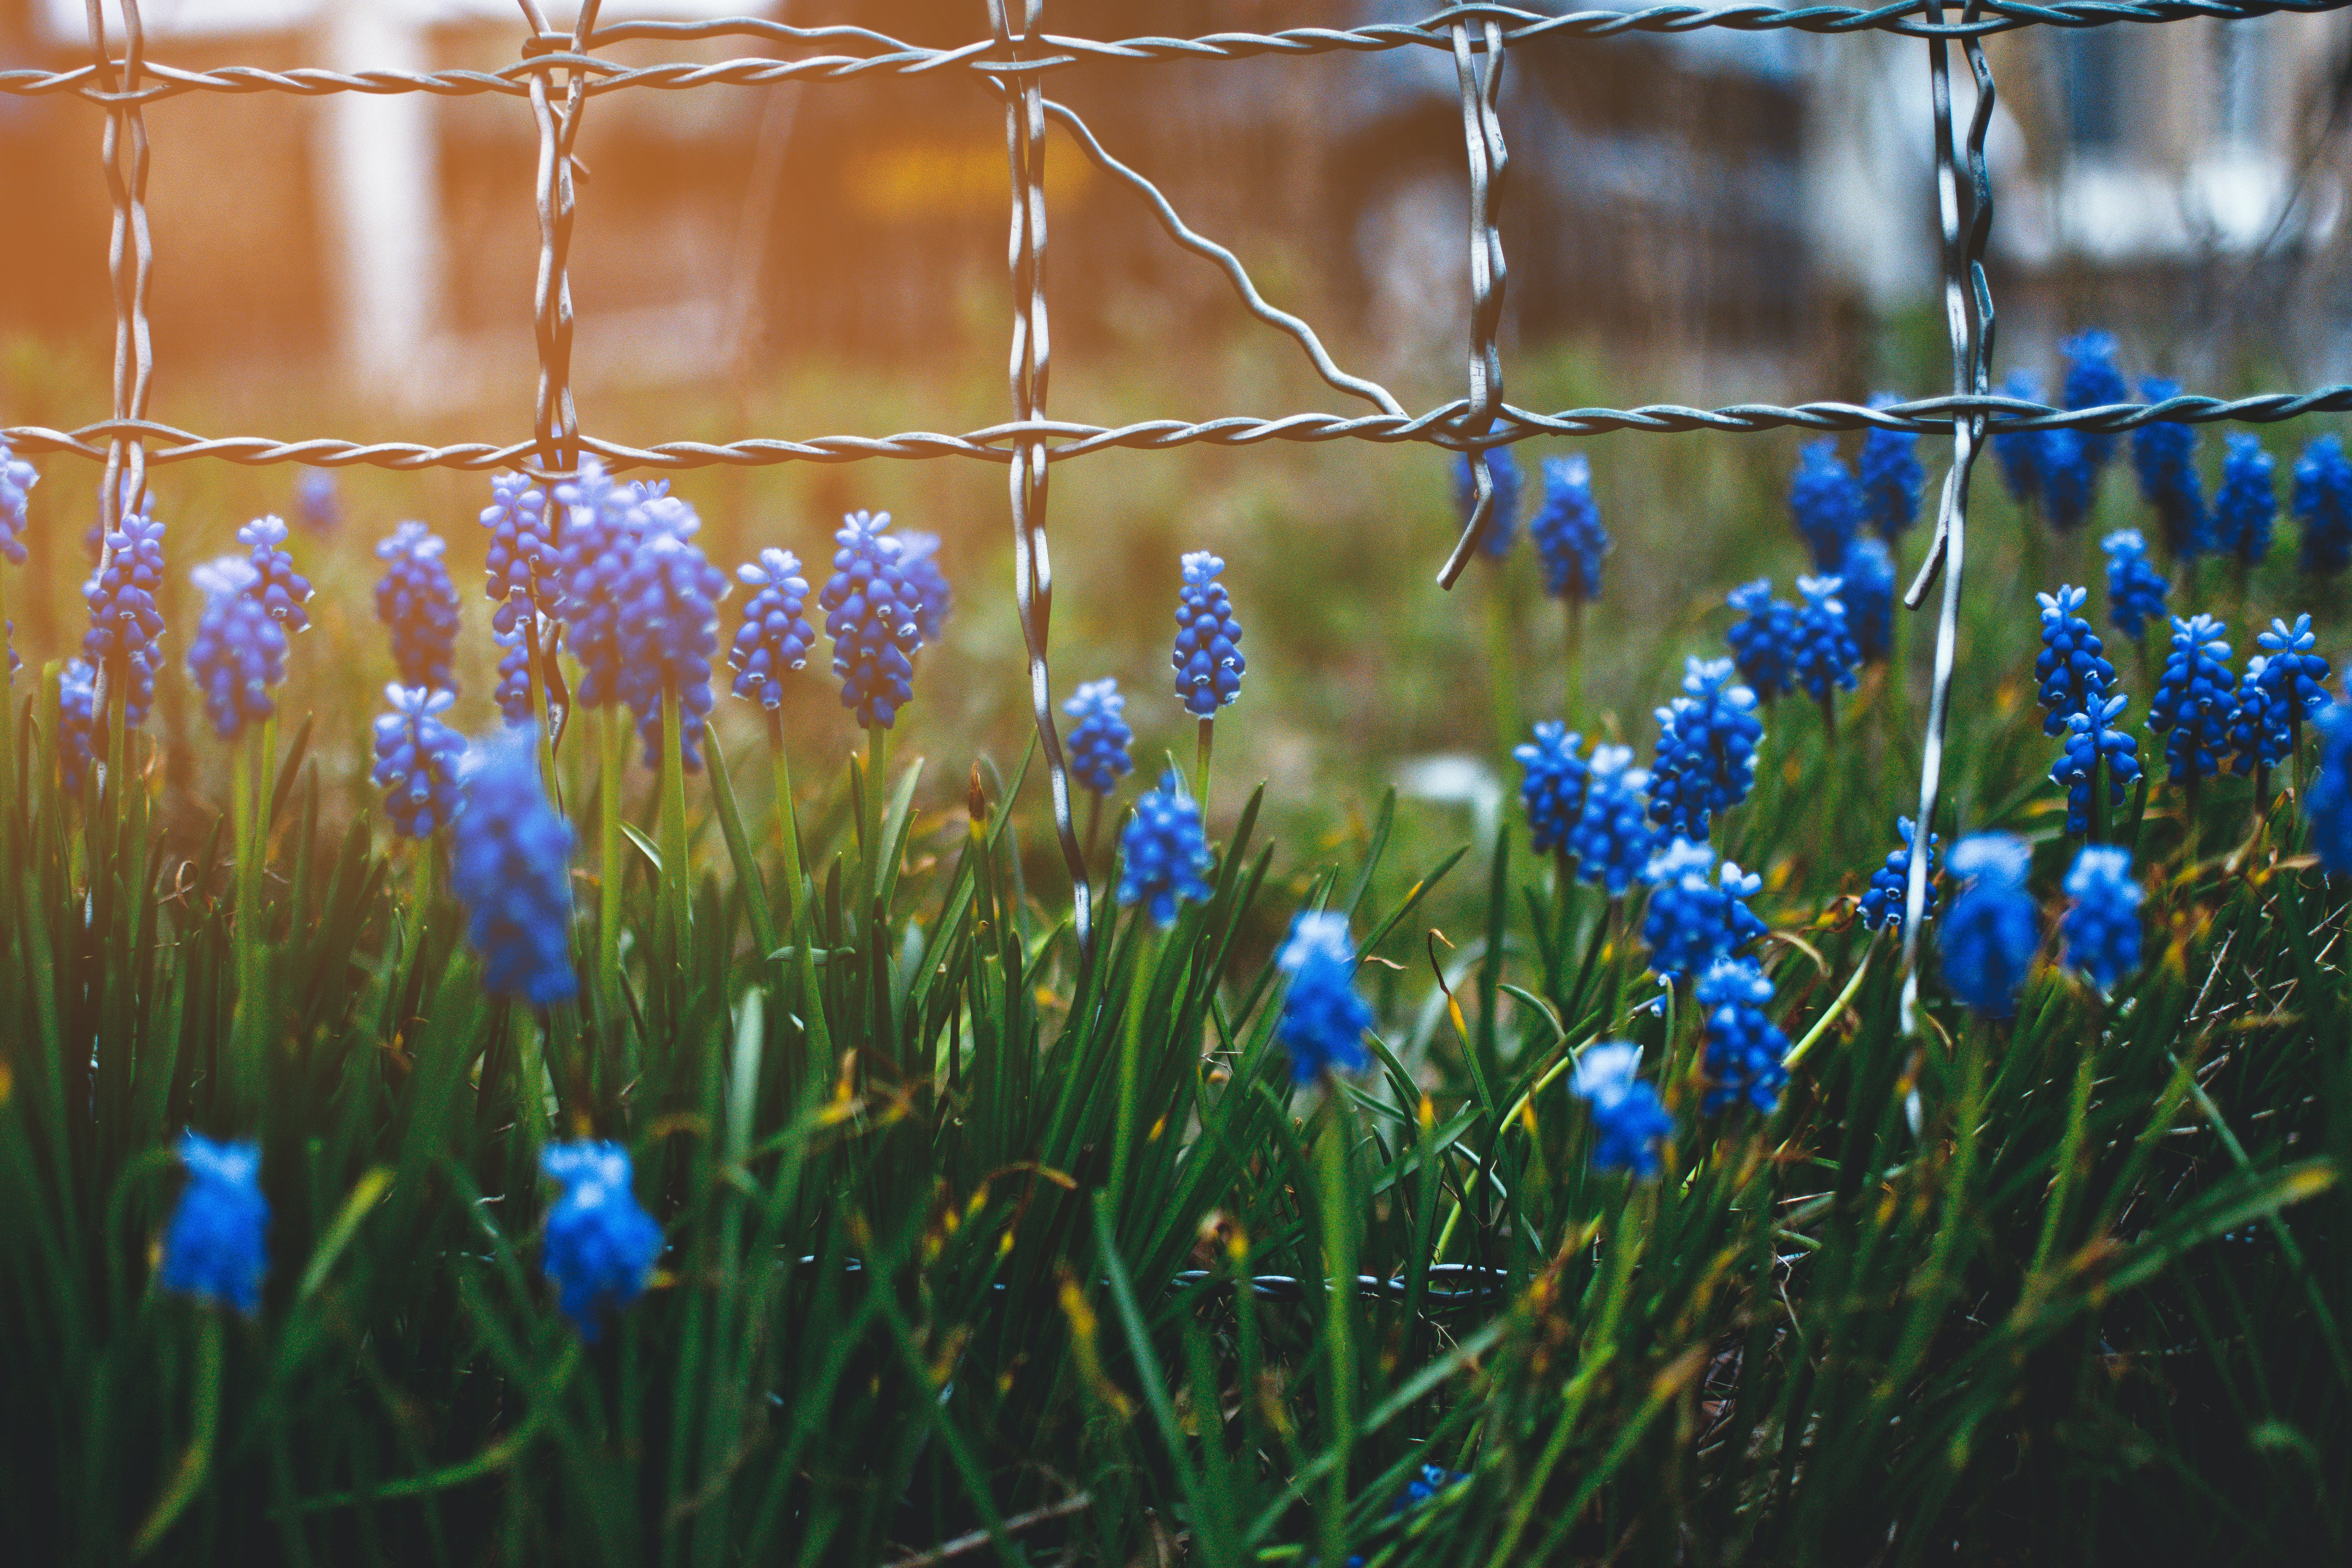 Blue Flowers on Bloom Beside Gray Fence Closeup Photo